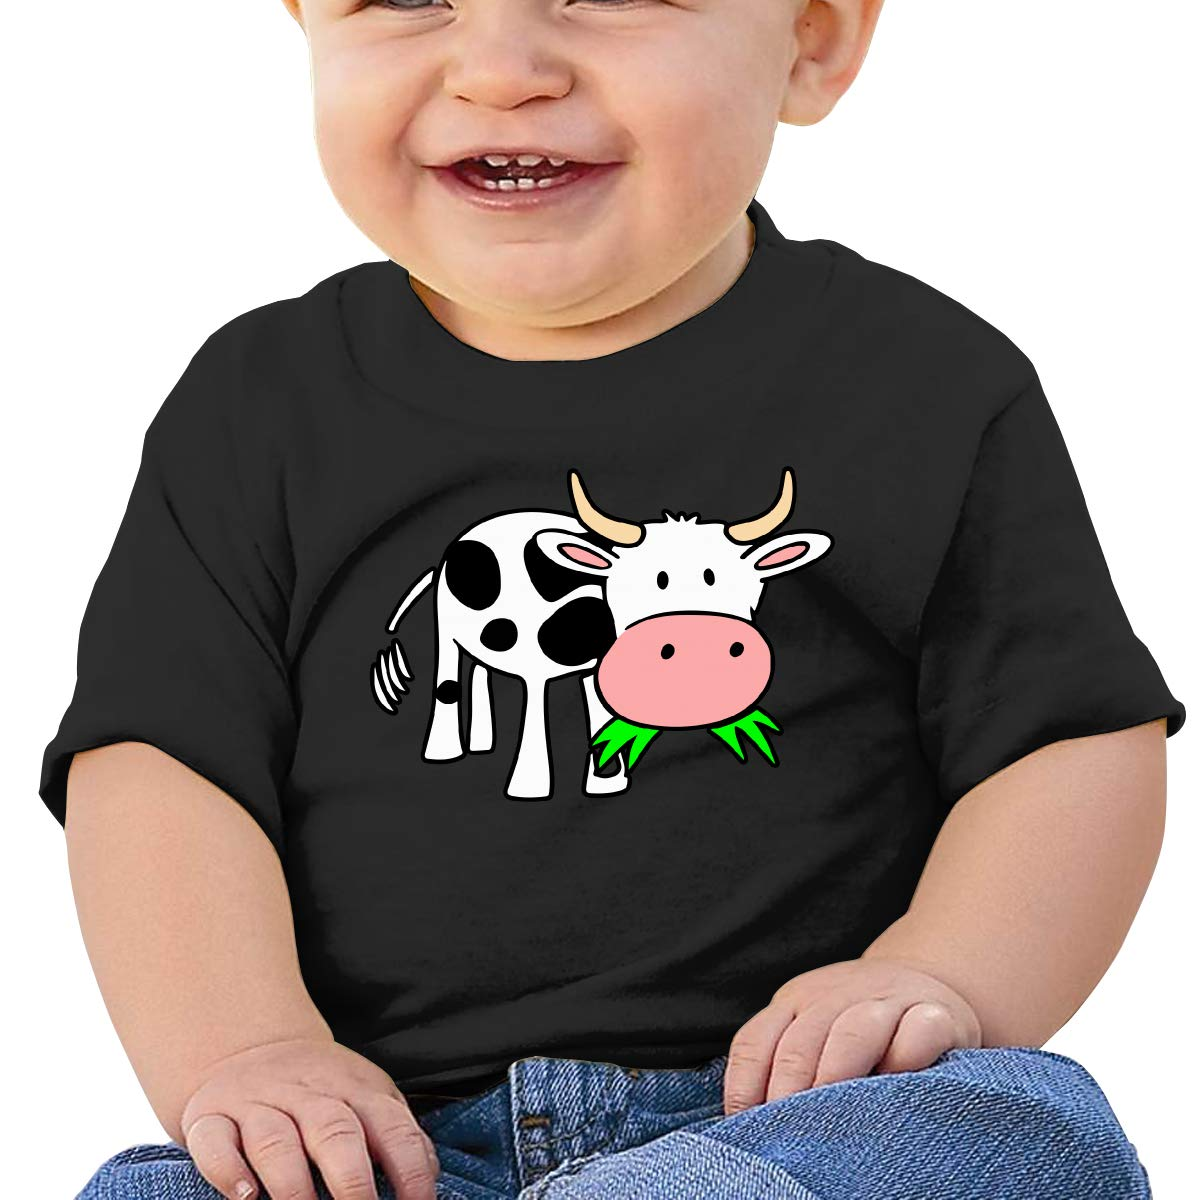 ZUGFGF-S3 Elegant Cow Newborn Baby Newborn Short Sleeve T-Shirt 6-24 Month Cotton Tops